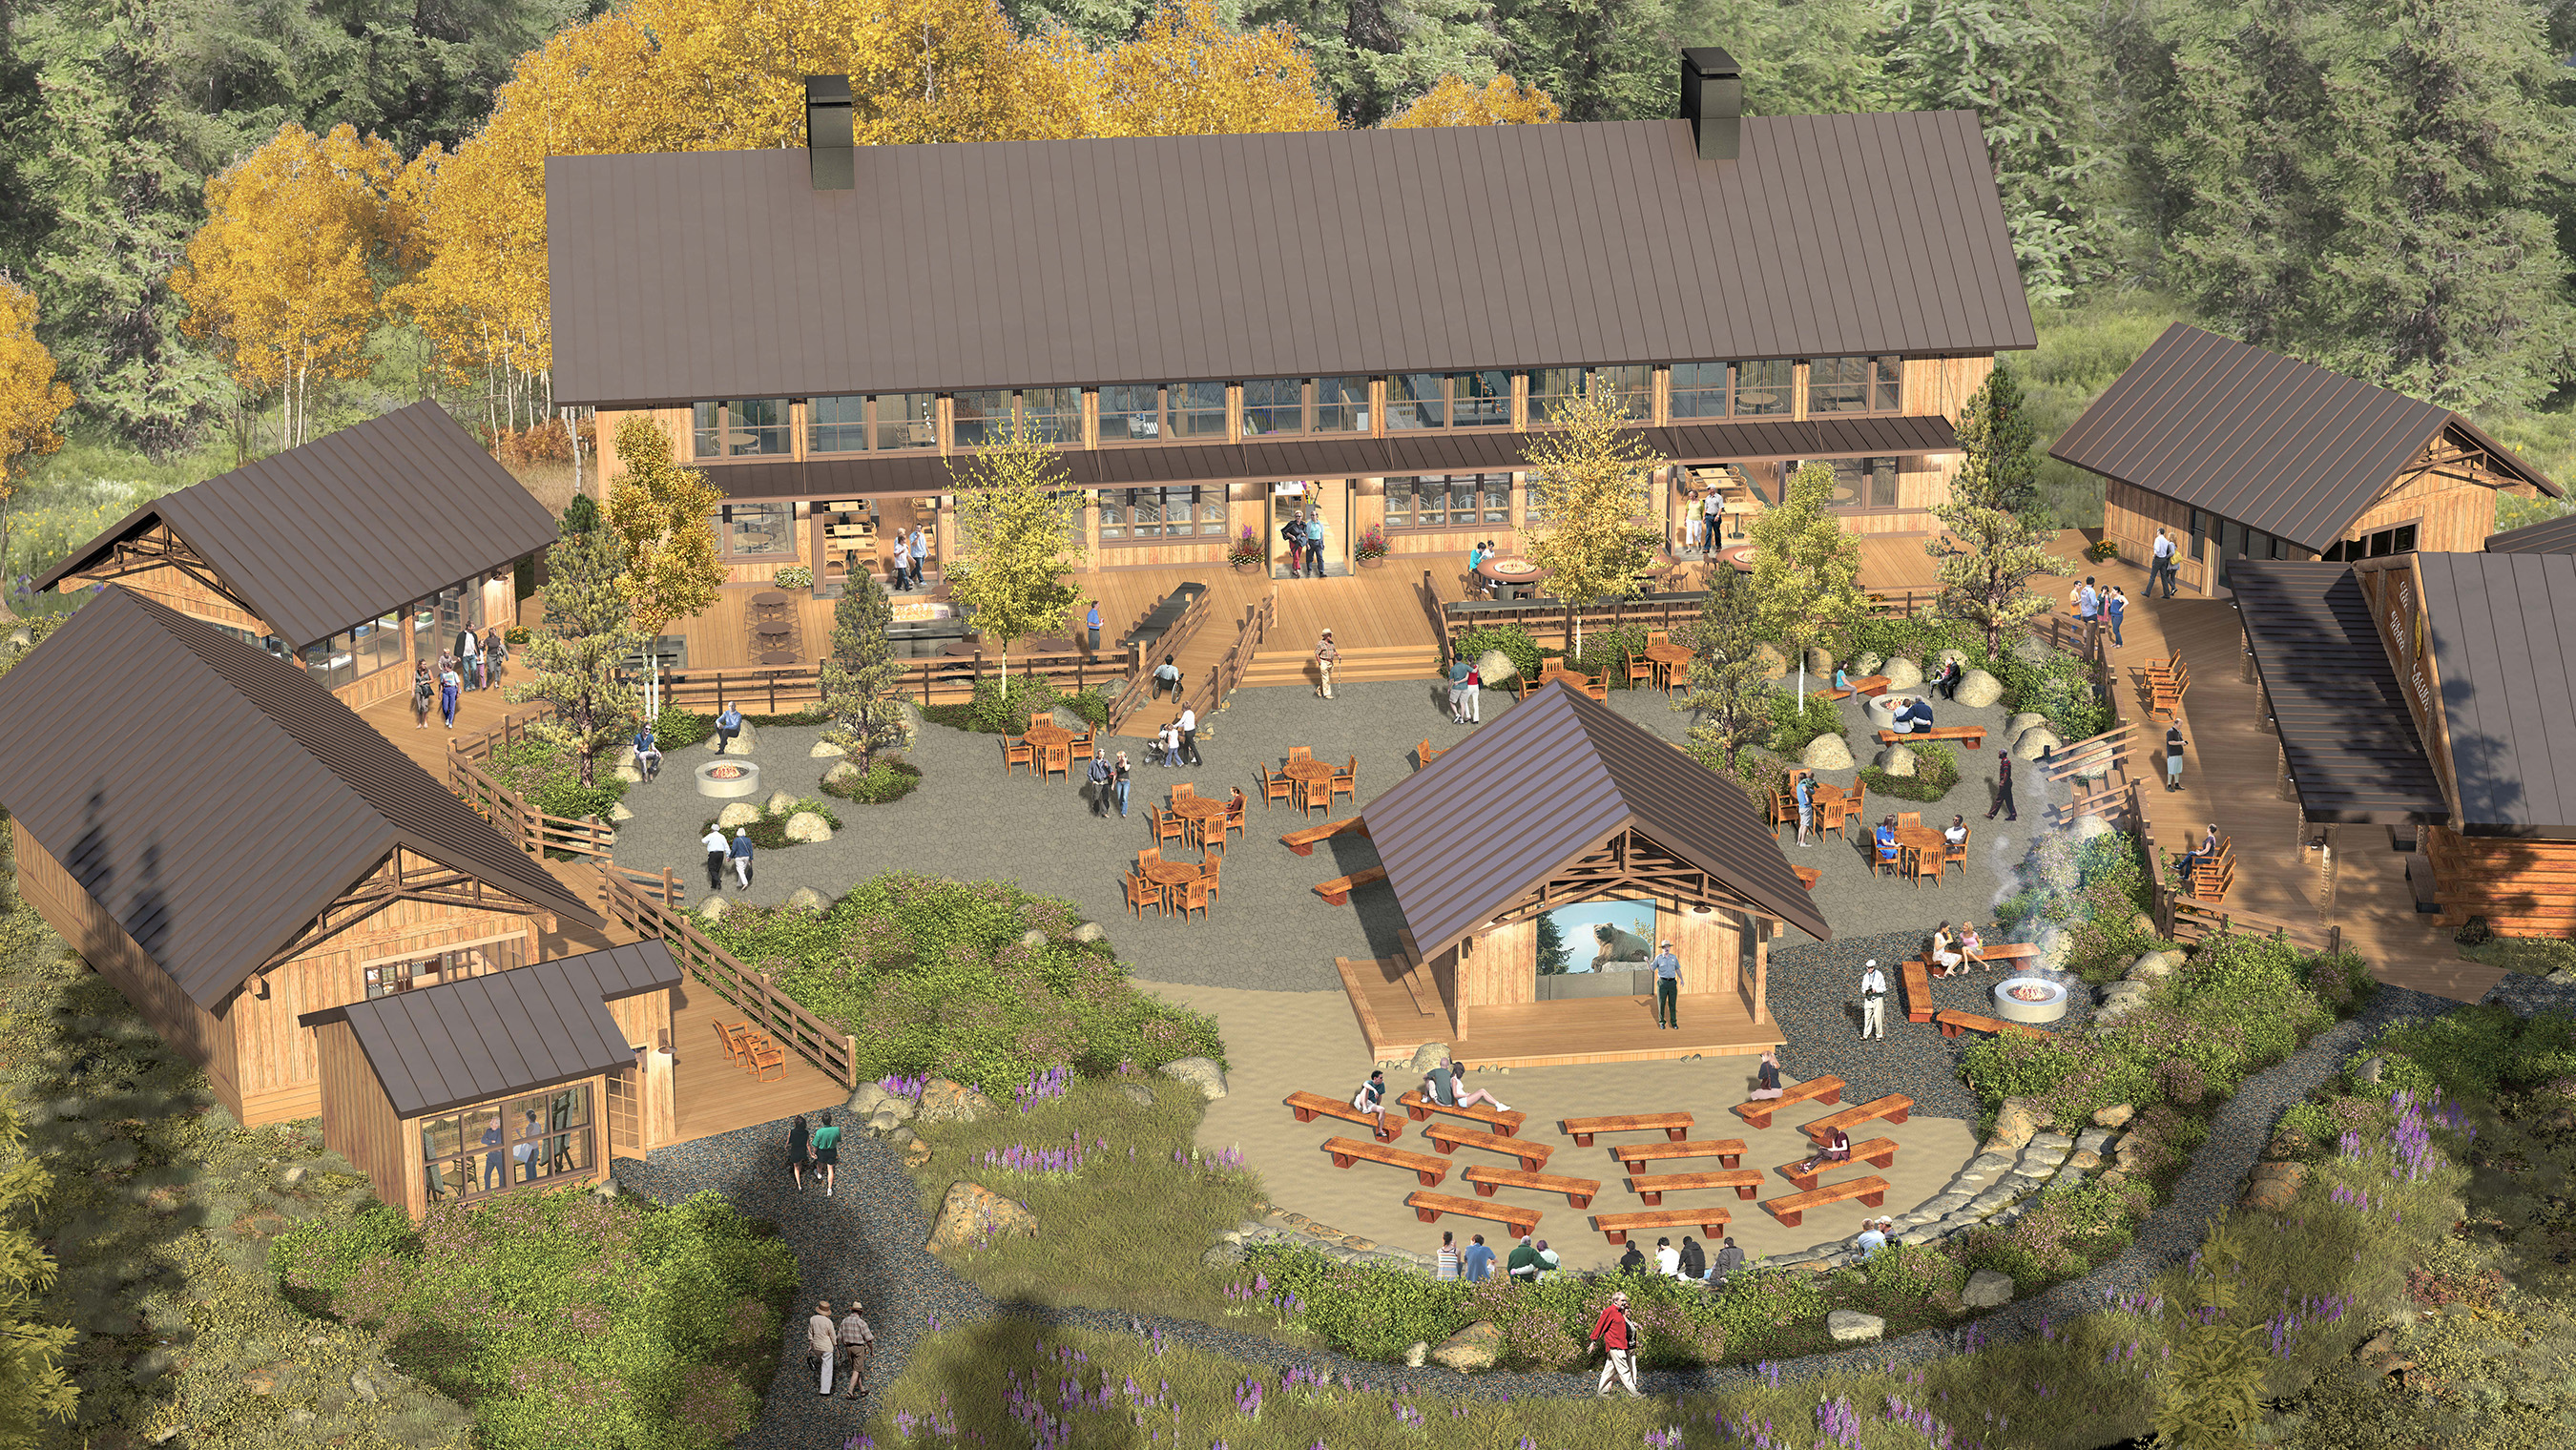 Holland America Line Breaks Ground On New Base Camp Complex At The Mckinley Chalet Resort Denali National Park